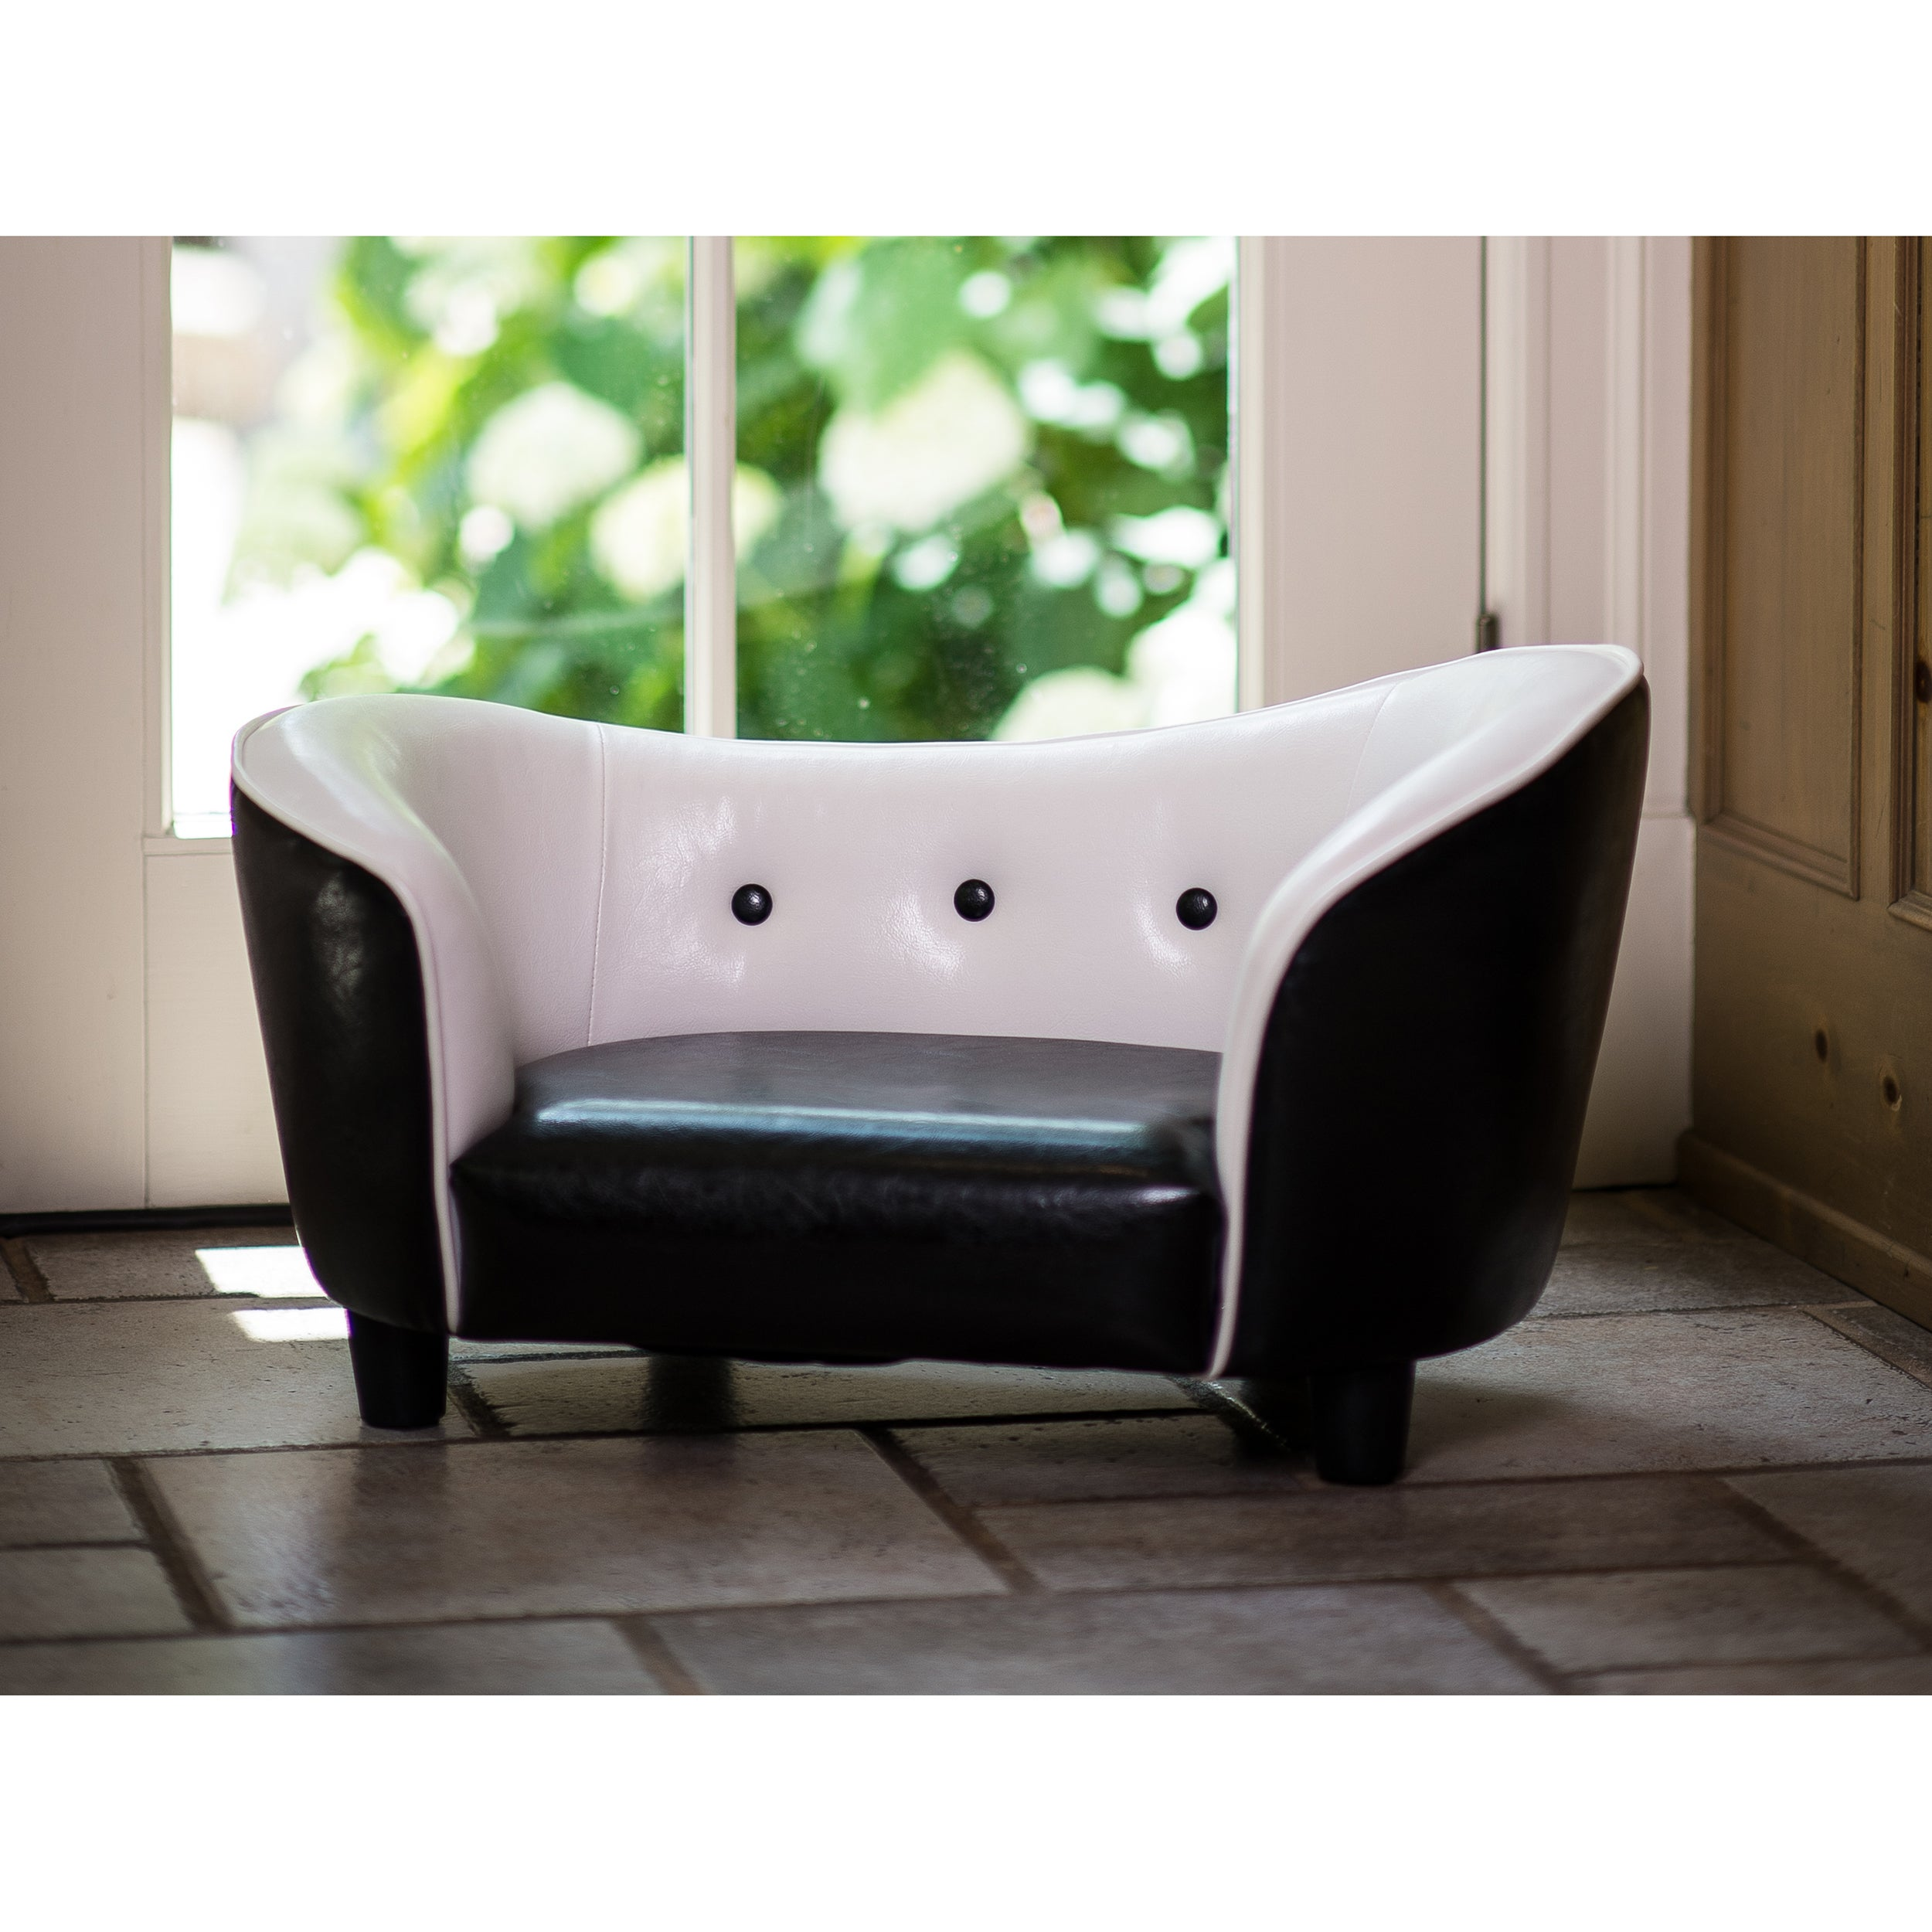 Dog Sofa Bed icontrall for